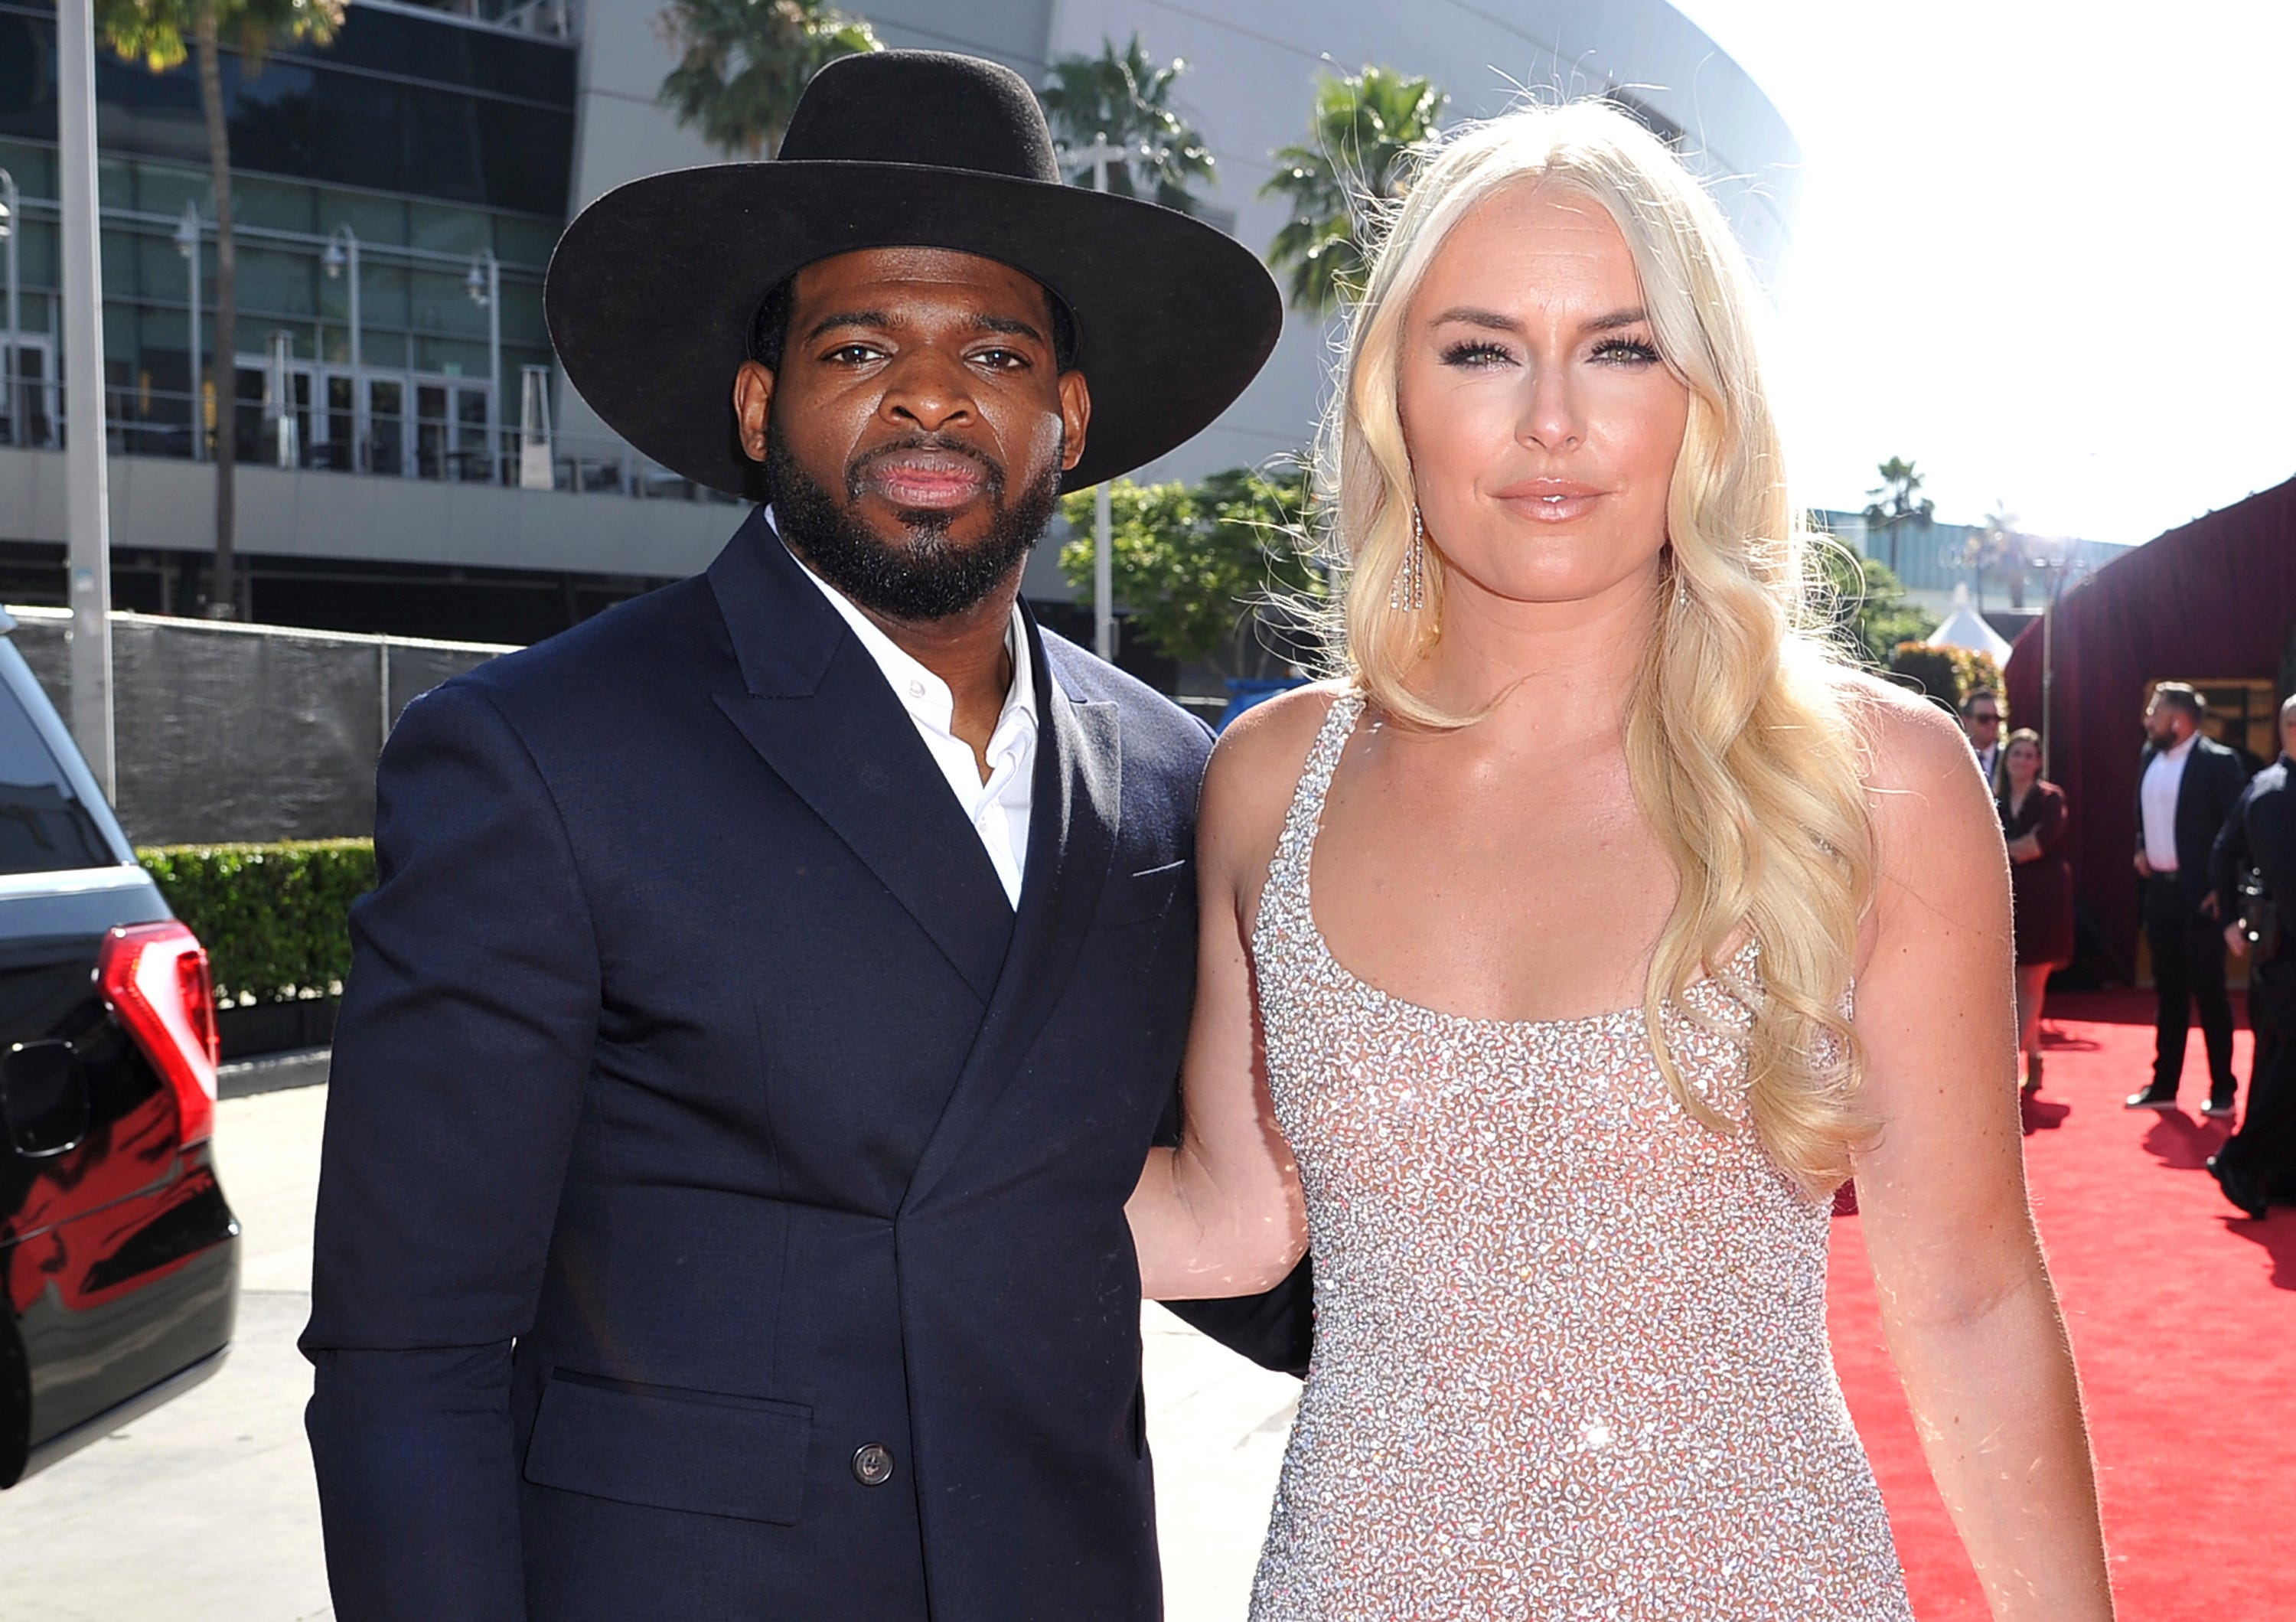 Lindsey Vonn Goes Social With P K Subban Marriage Proposal New york ski ed foundation. p k subban marriage proposal